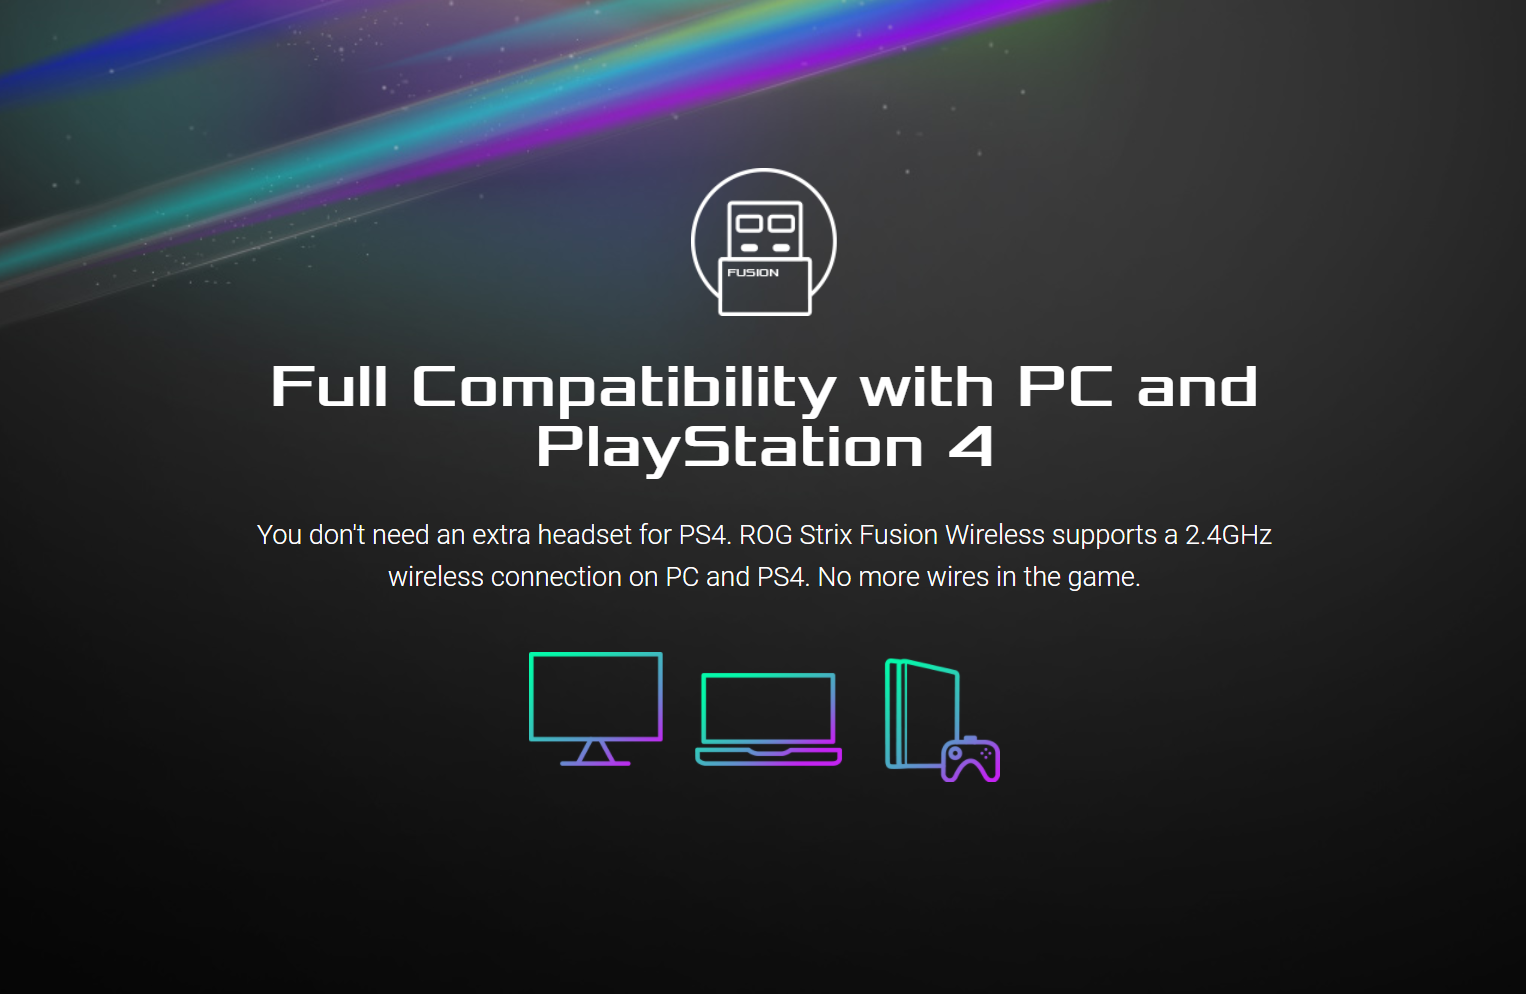 Full Compatibility with PC and PlayStation 4 - You don't need an extra headset for PS4. ROG Strix Fusion Wireless supports a 2.4GHz wireless connection on PC and PS4. No more wires in the game.